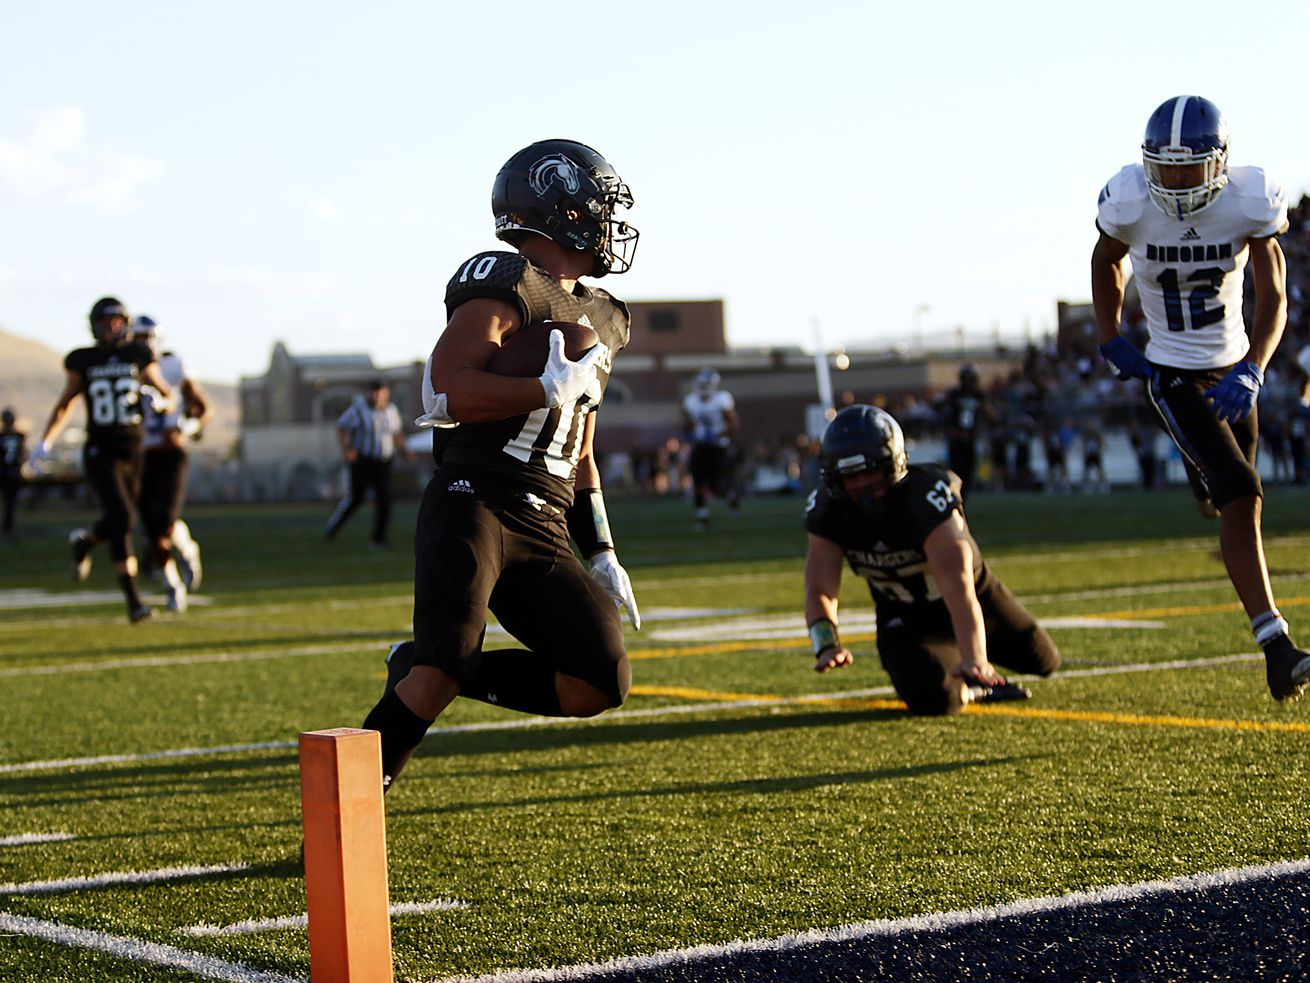 UHSAA unveils first high school football RPI rankings